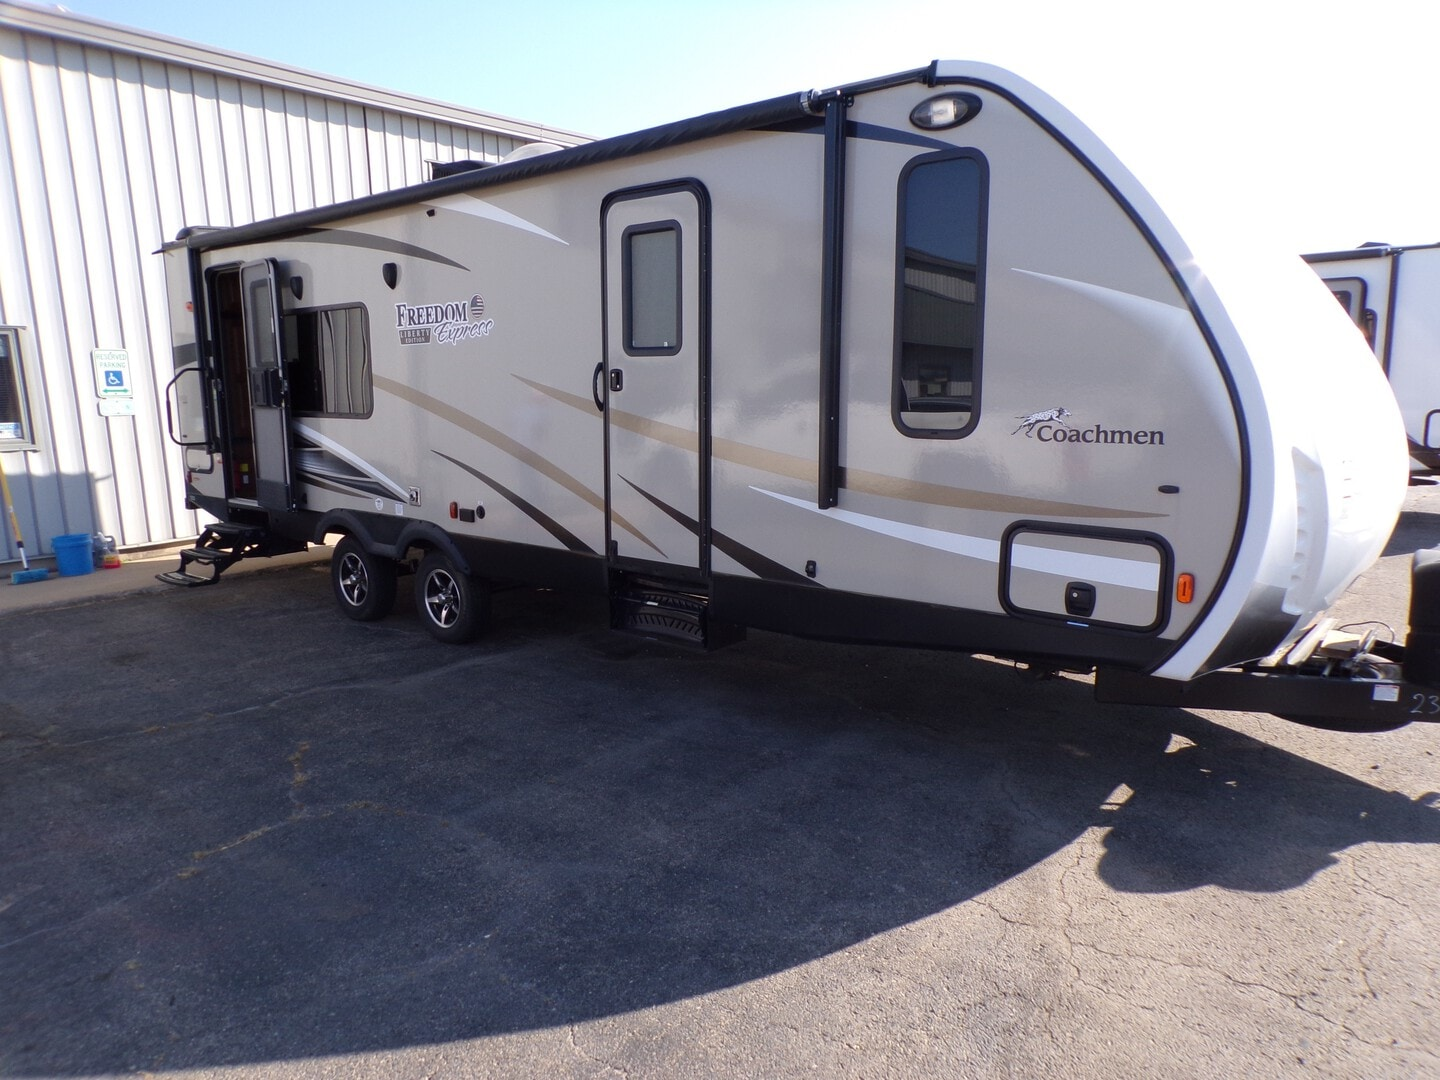 Used, 2017, Freedom Express Liberty Edition, 276RKDSLE, Travel Trailers